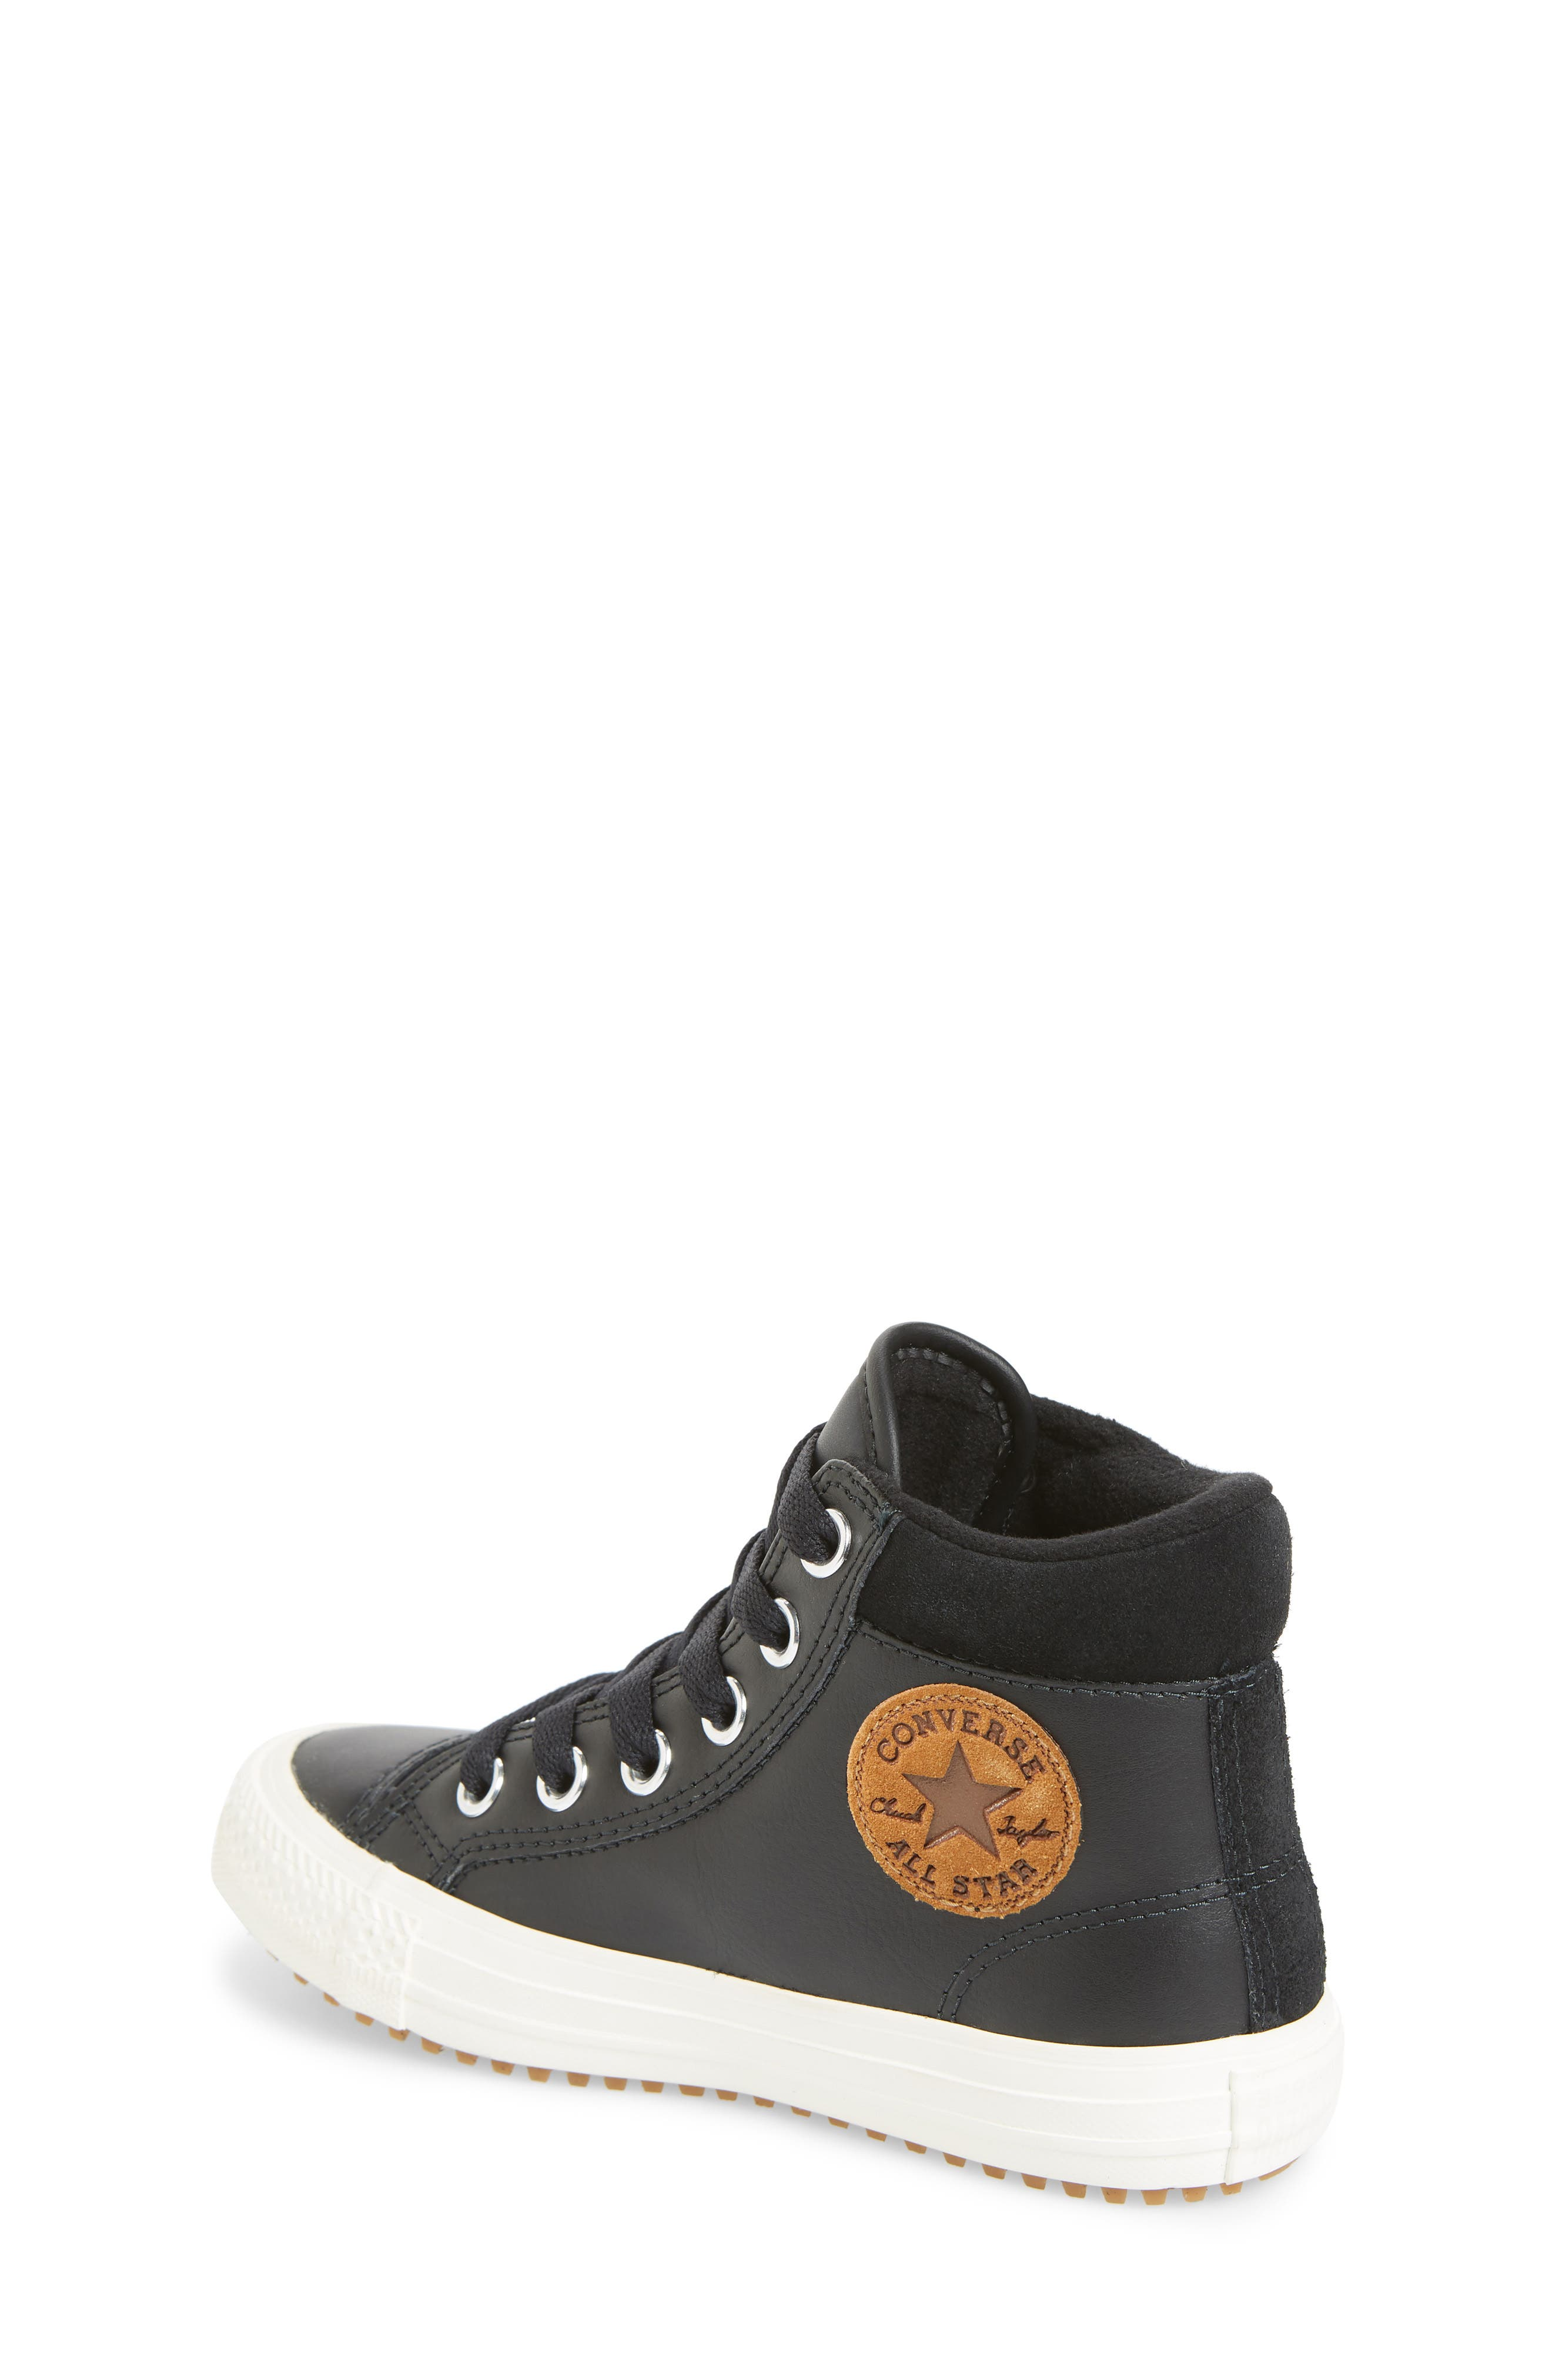 CONVERSE,                             Chuck Taylor<sup>®</sup> All Star<sup>®</sup> PC High Top Sneaker,                             Alternate thumbnail 2, color,                             BLACK